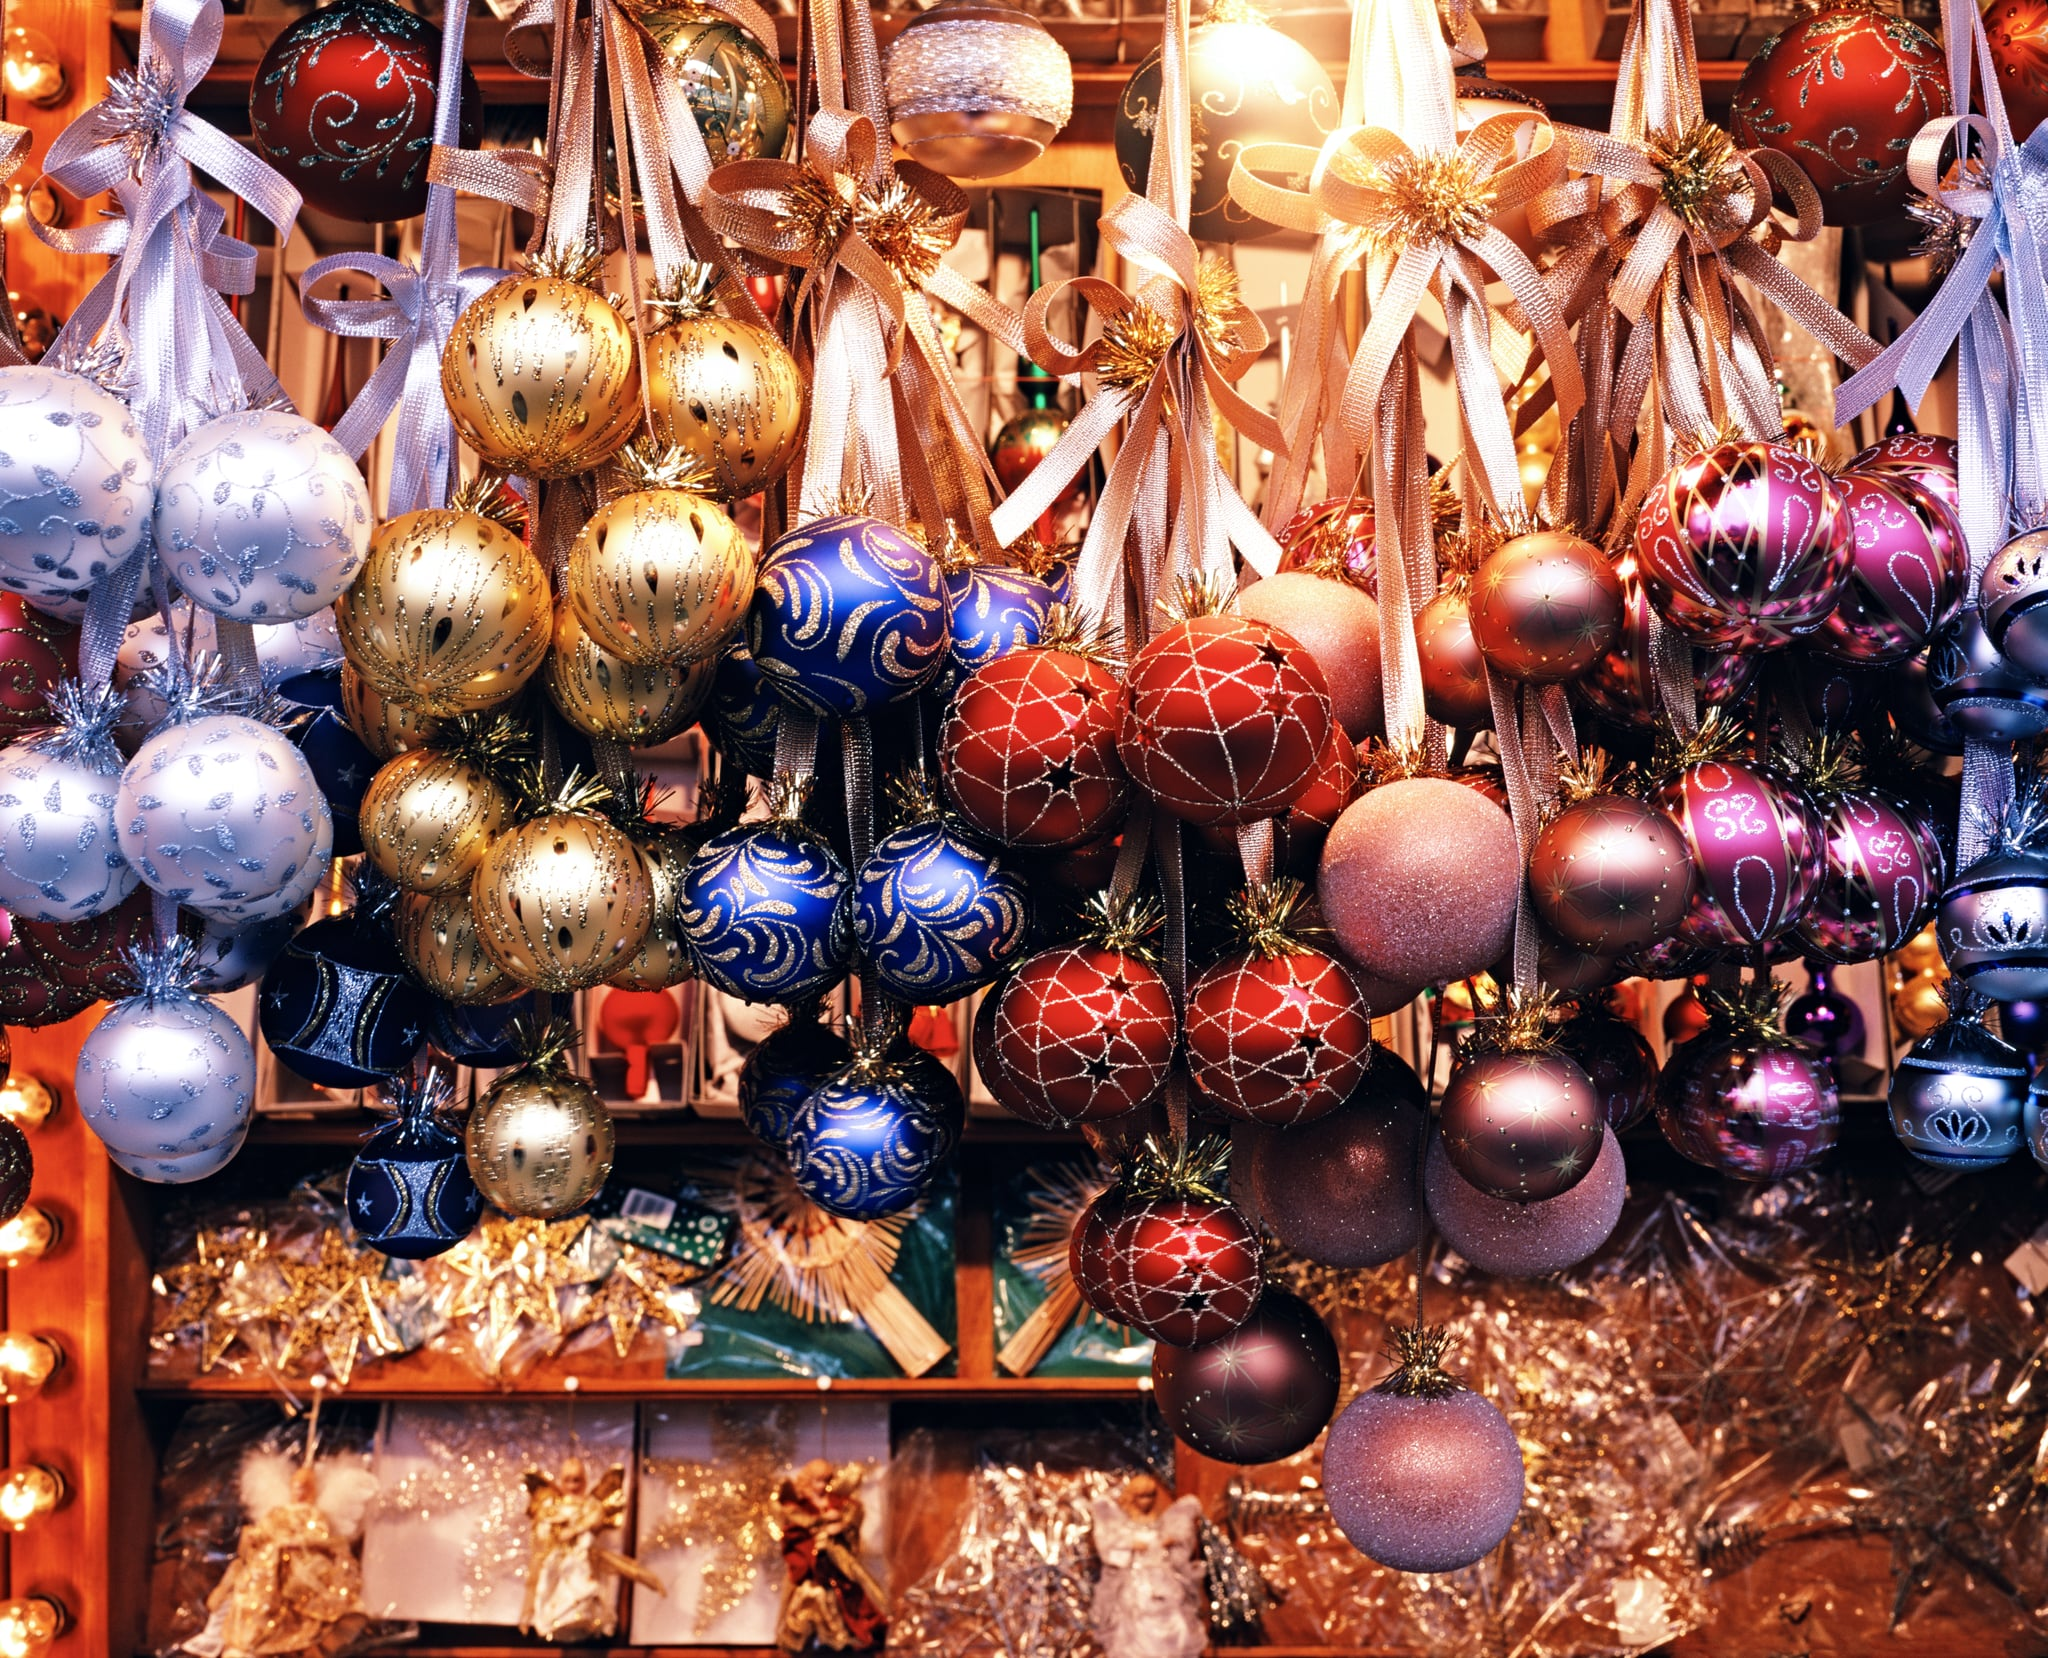 Christmas ornaments at Cologne Christmas Market. Cologne, Germany